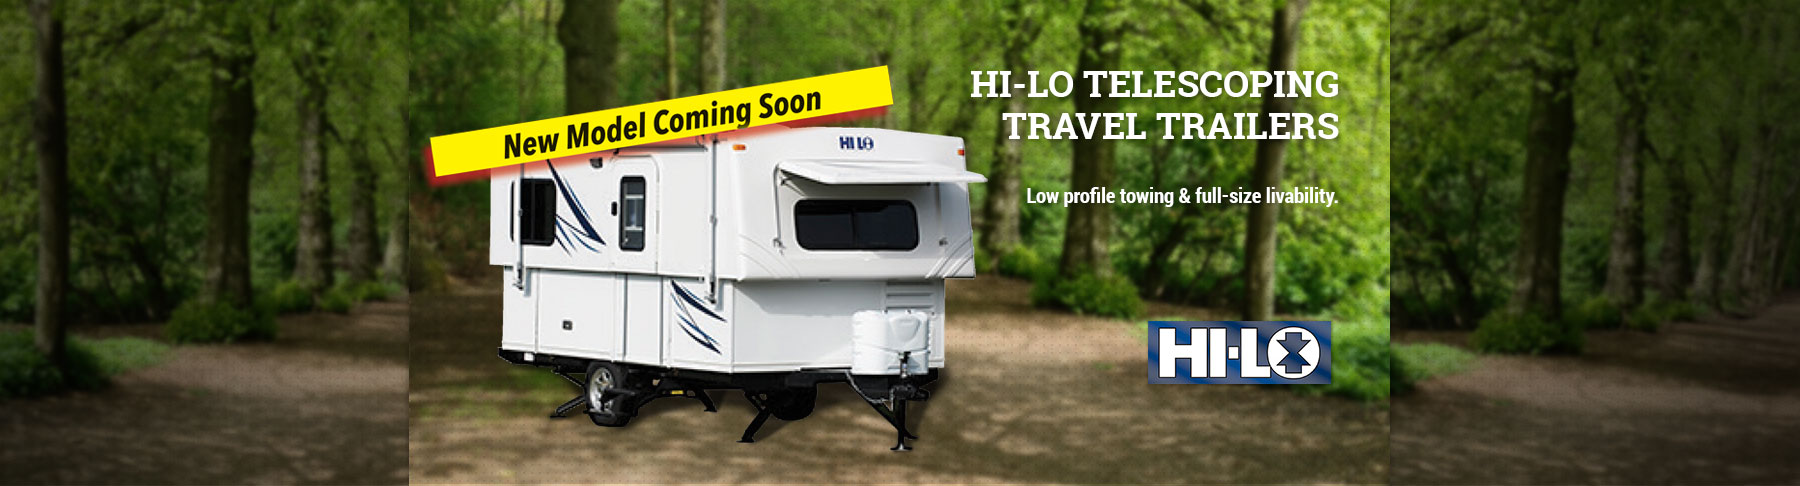 Lightweight Campers | Travel Trailers | Kerola's Campers, Inc